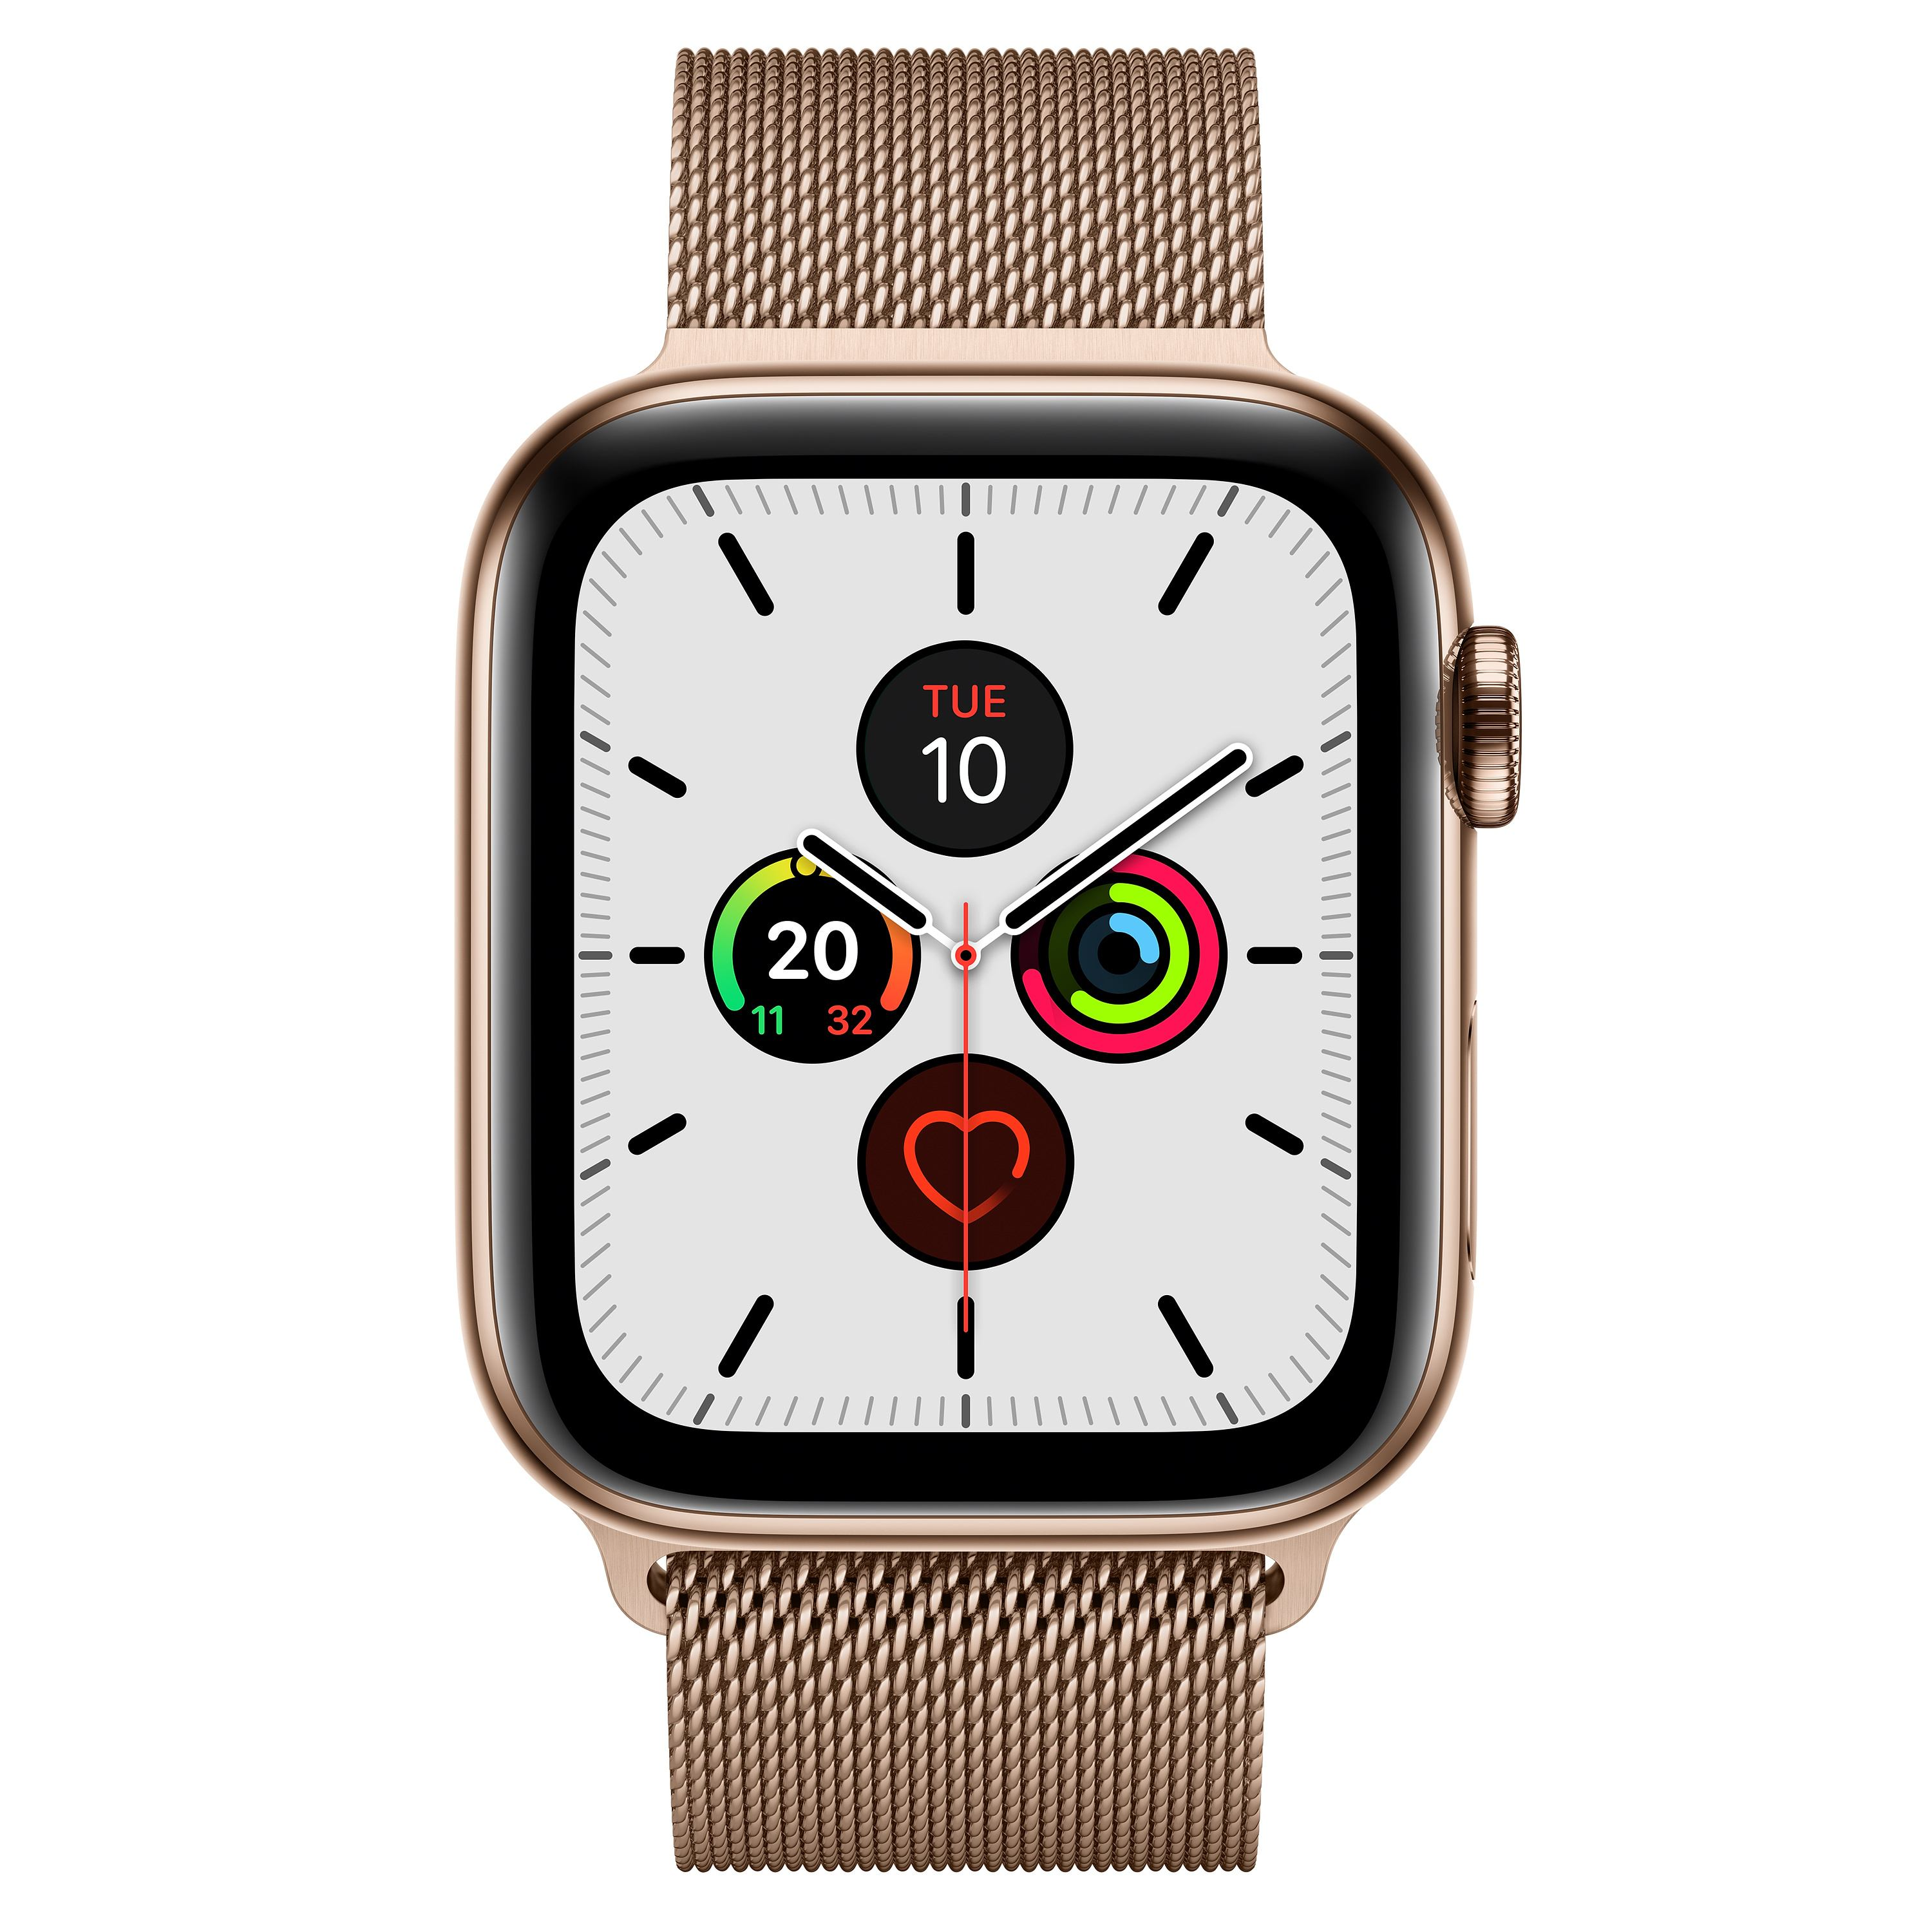 2022274-Apple-Watch-Series-5-smartwatch-Oro-OLED-Cellulare-GPS-satellitare-Ap